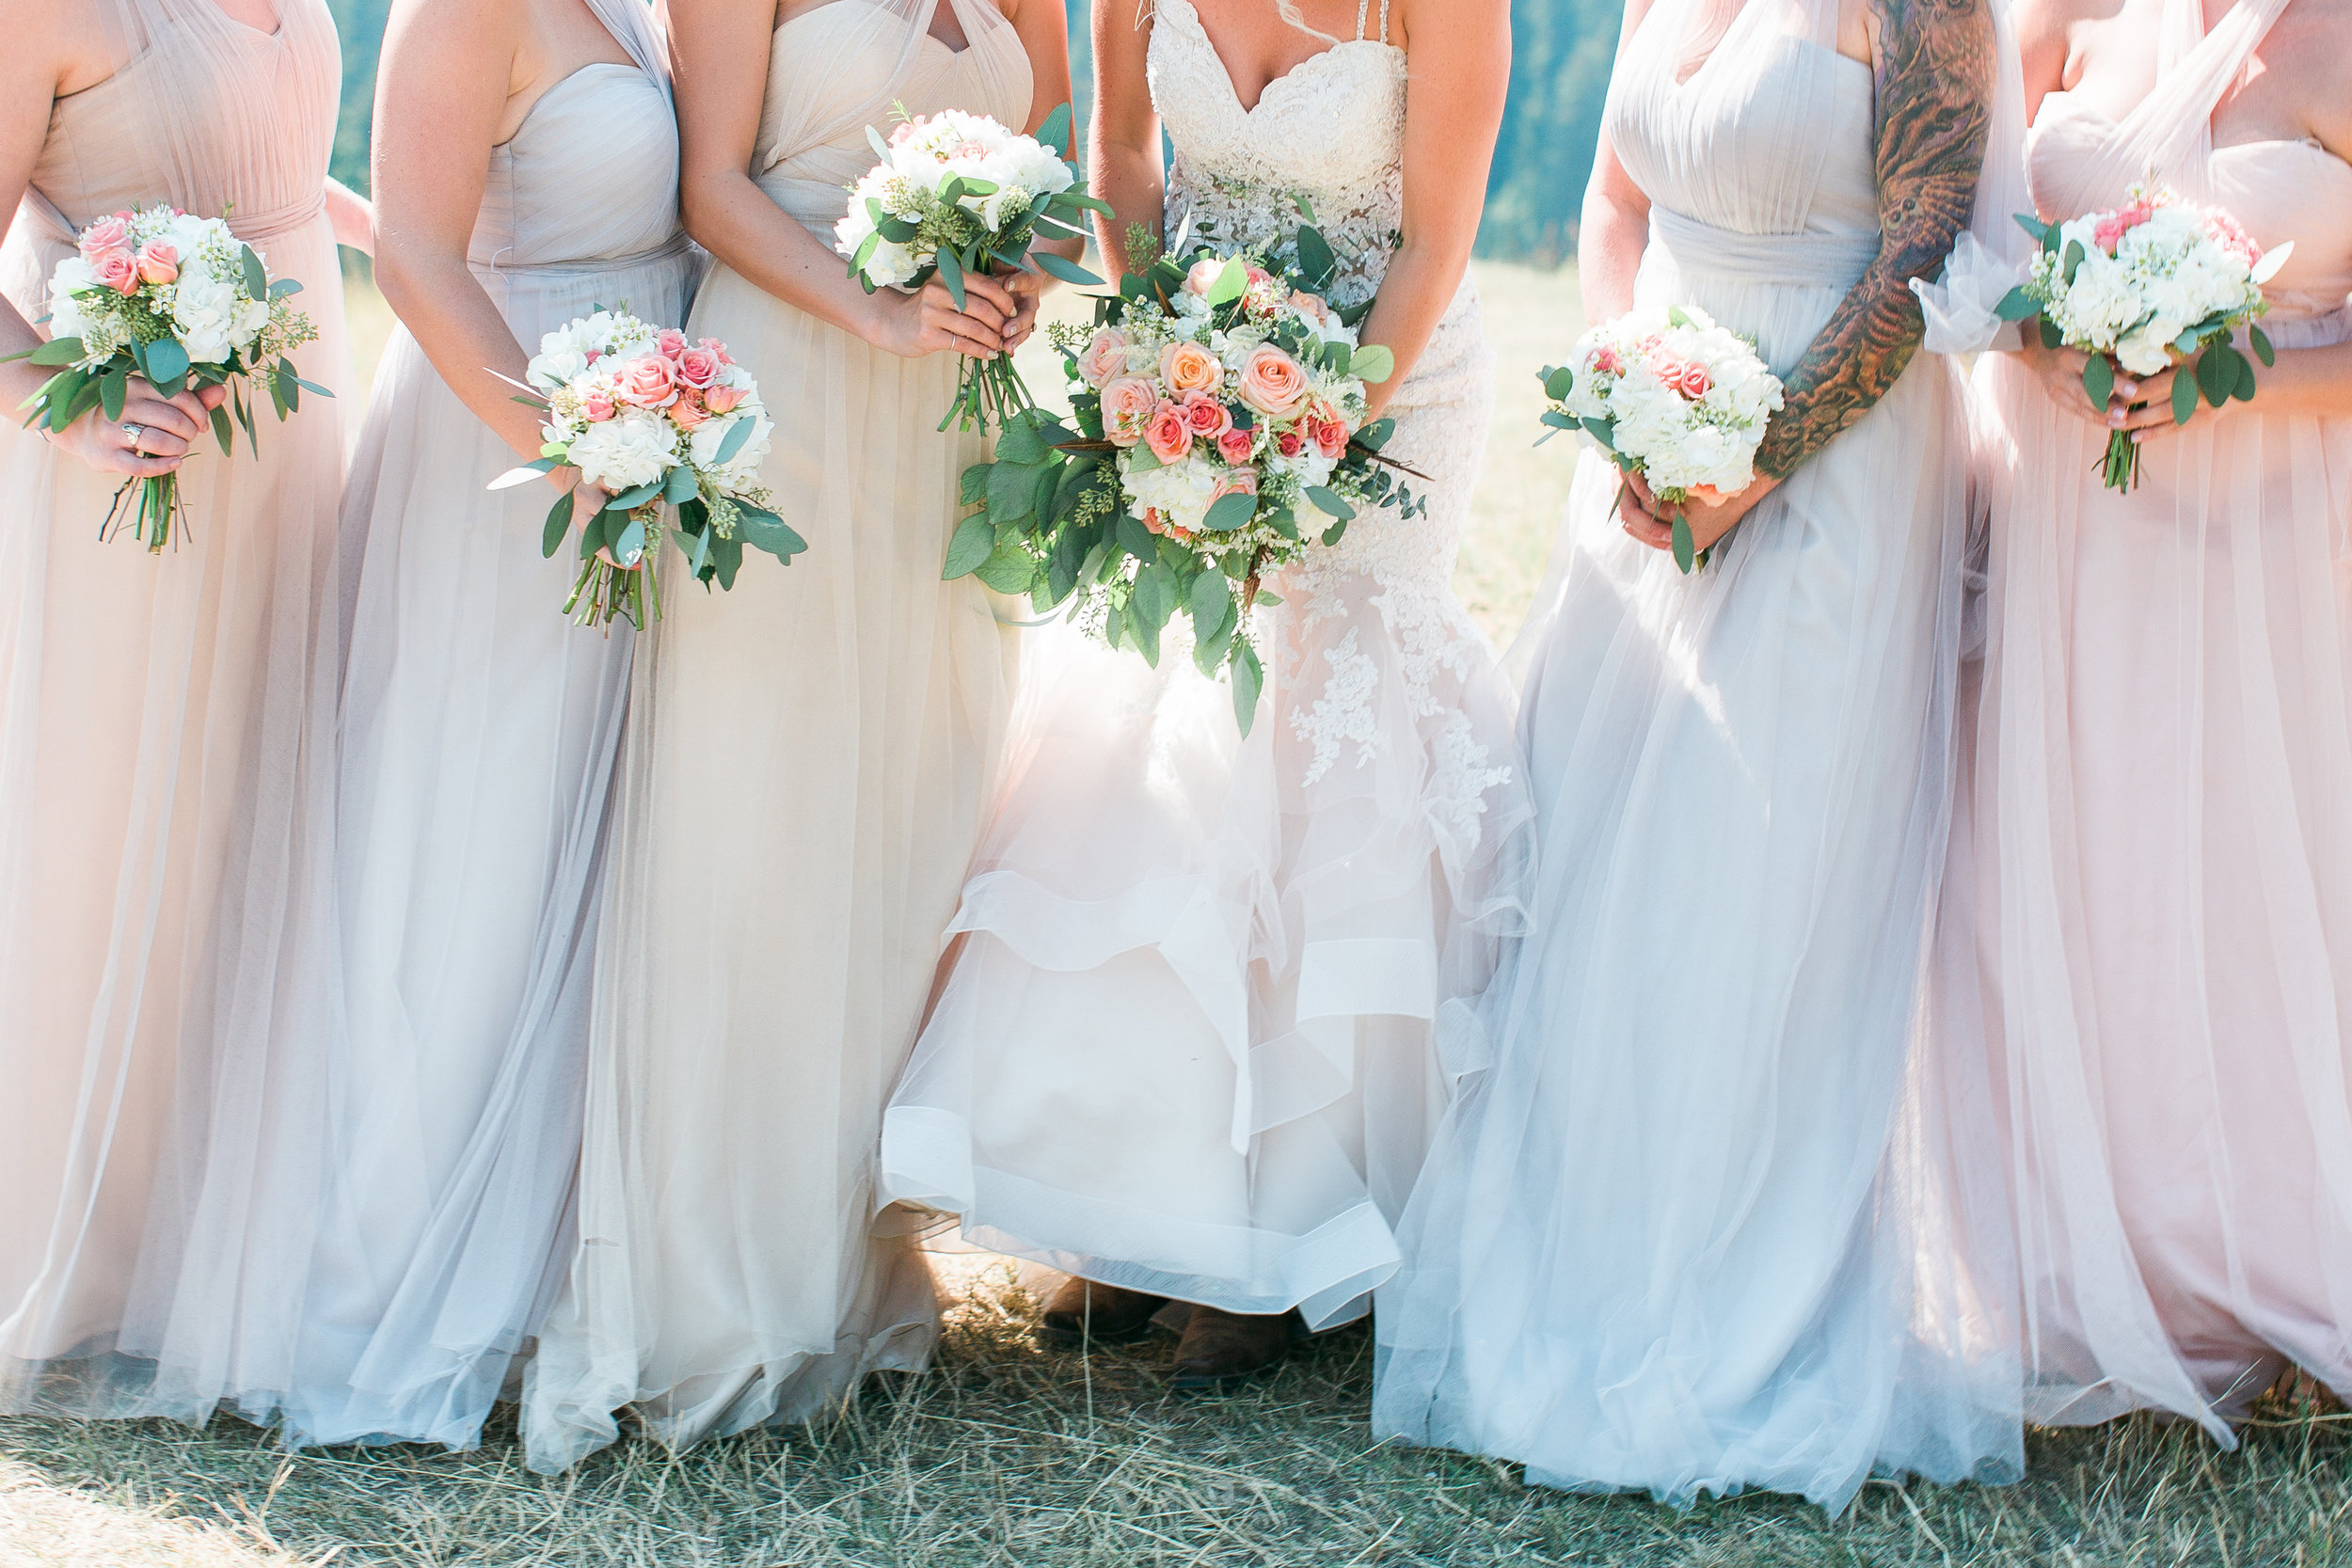 Flowy bridesmaid dresses at Big Sky Montana wedding at Lone Mountain Ranch with bridesmaid bouquets